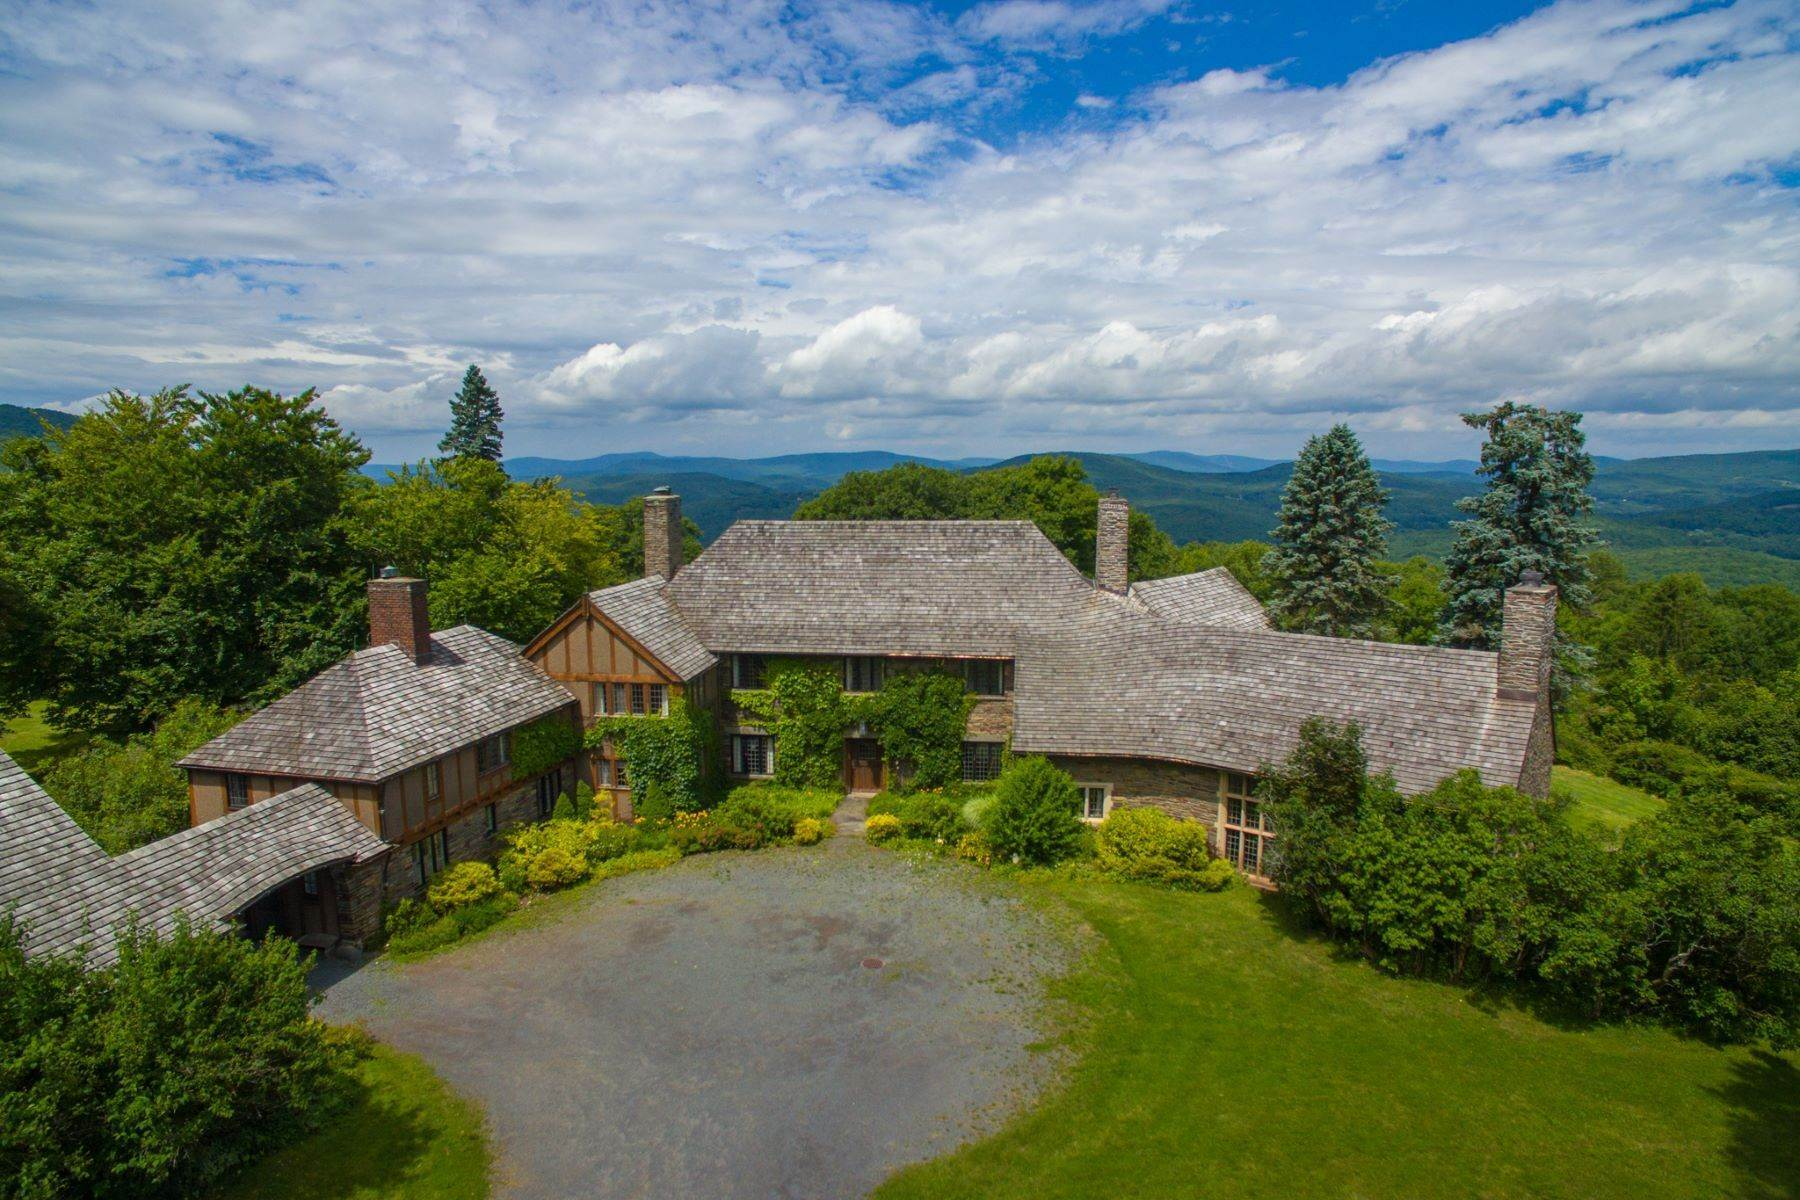 Single Family Homes for Sale at Sul Monte Mansion on Belleayre Mountain 352 Galli Curci Road, County Route 49A Highmount, New York 12441 United States